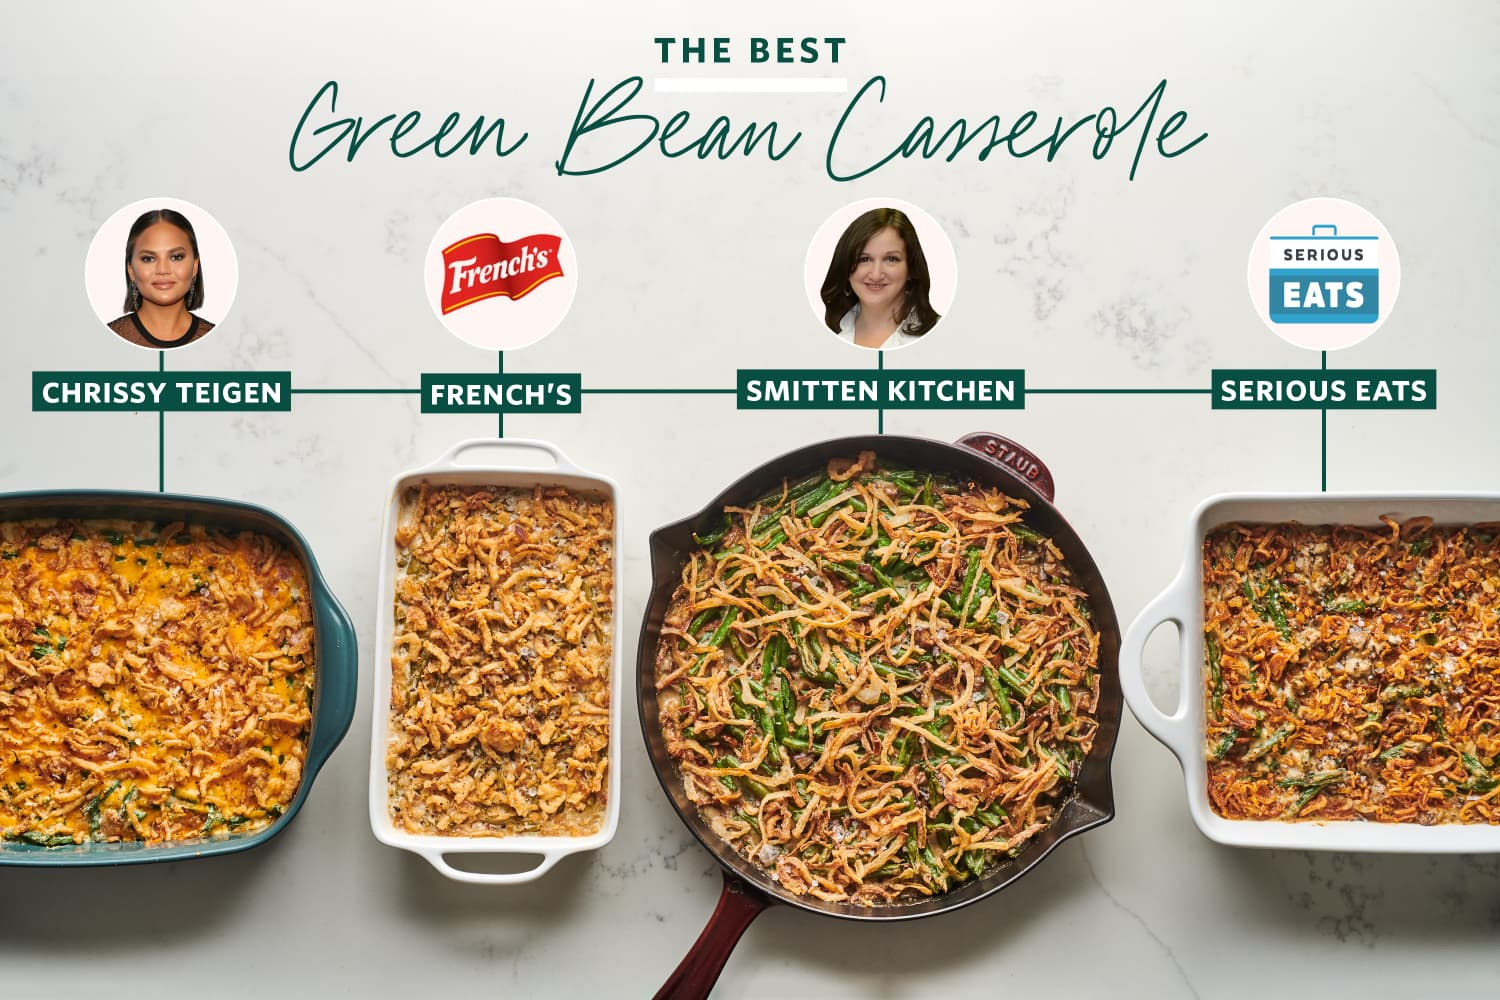 We Tested 4 Famous Green Bean Casserole Recipes and Found a Clear Winner